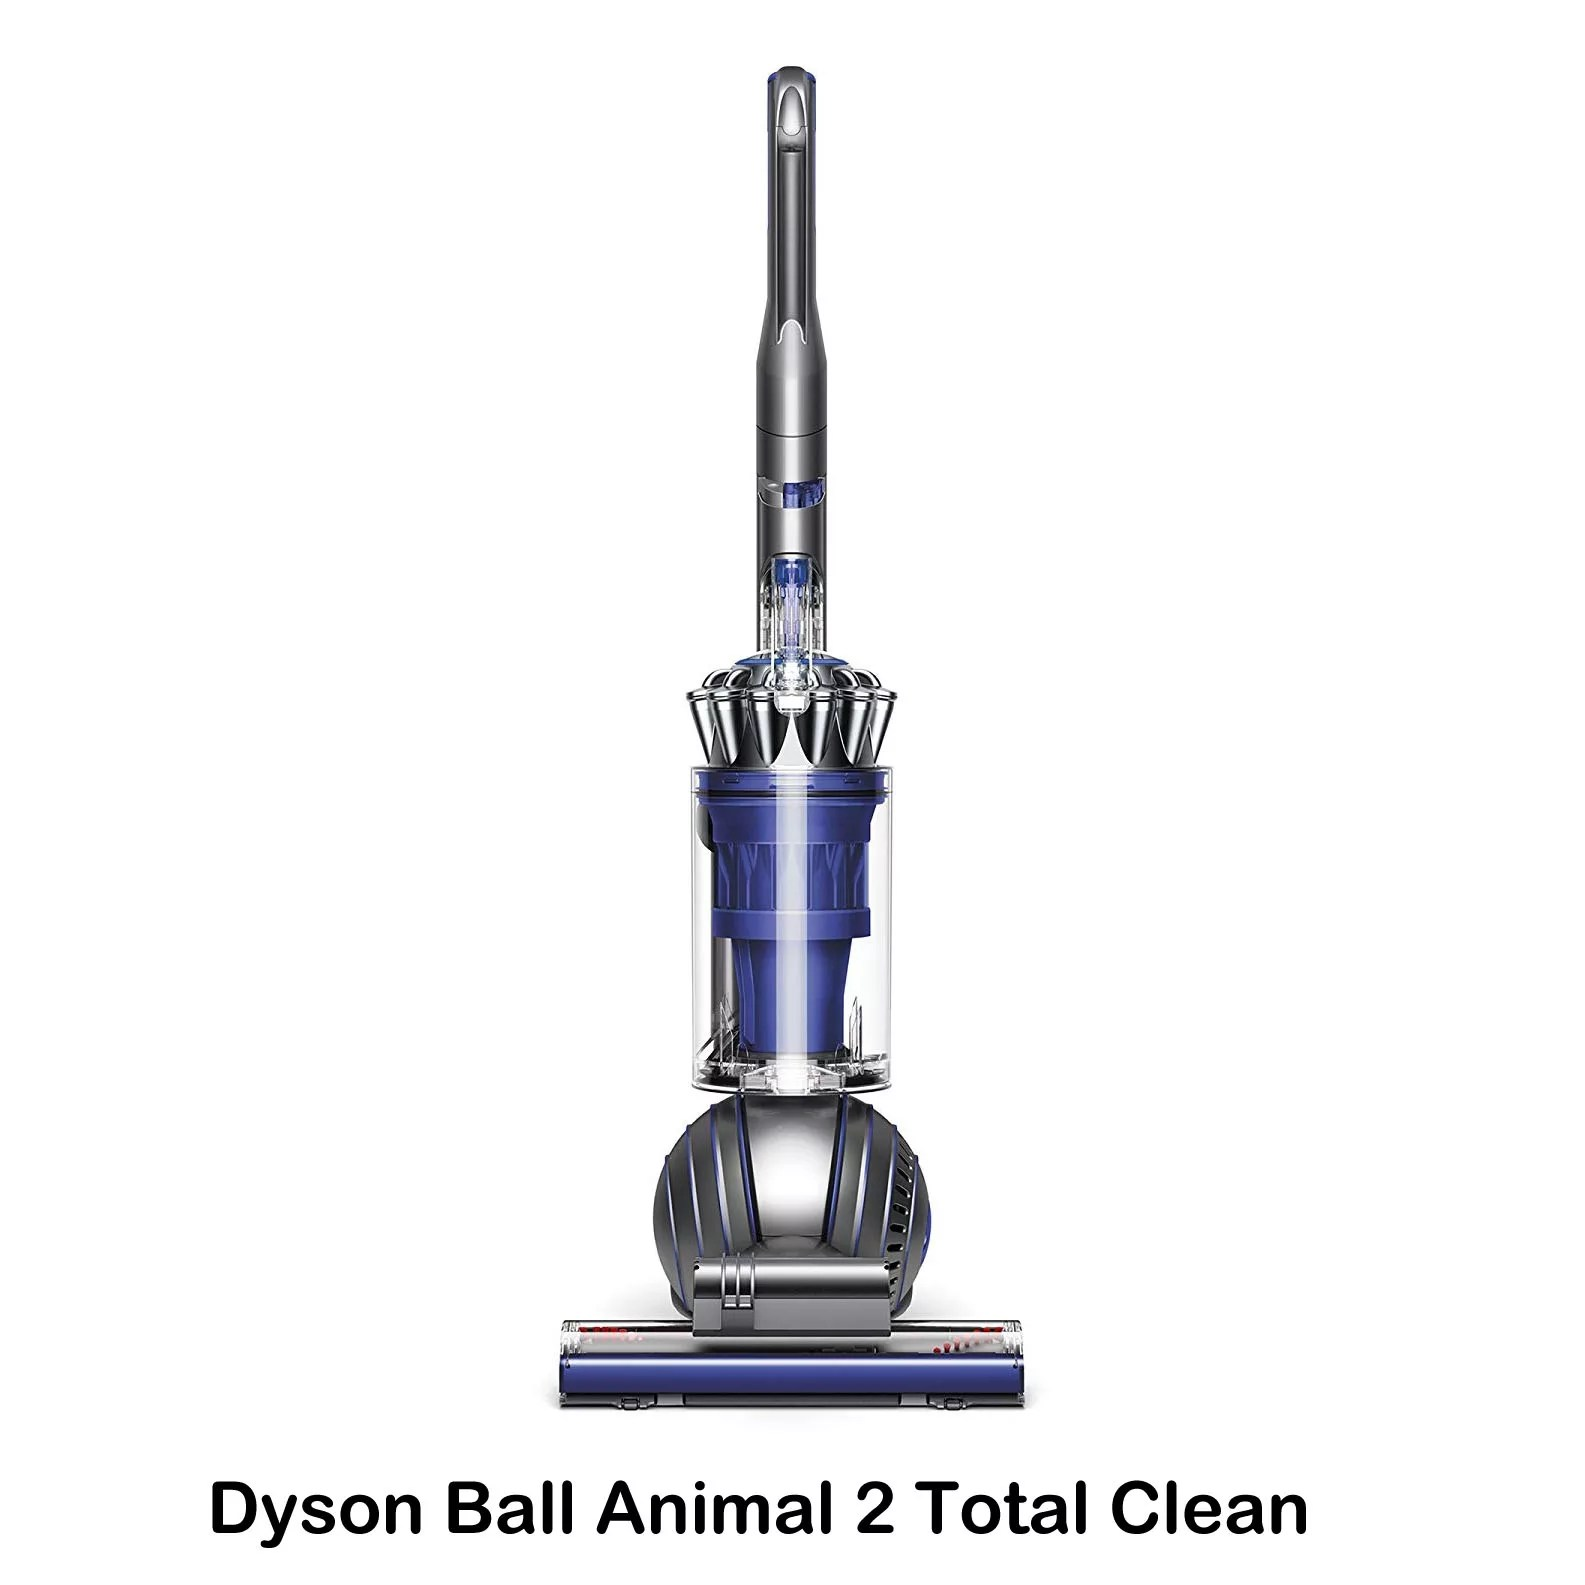 Dyson Ball Animal 2 Total Clean